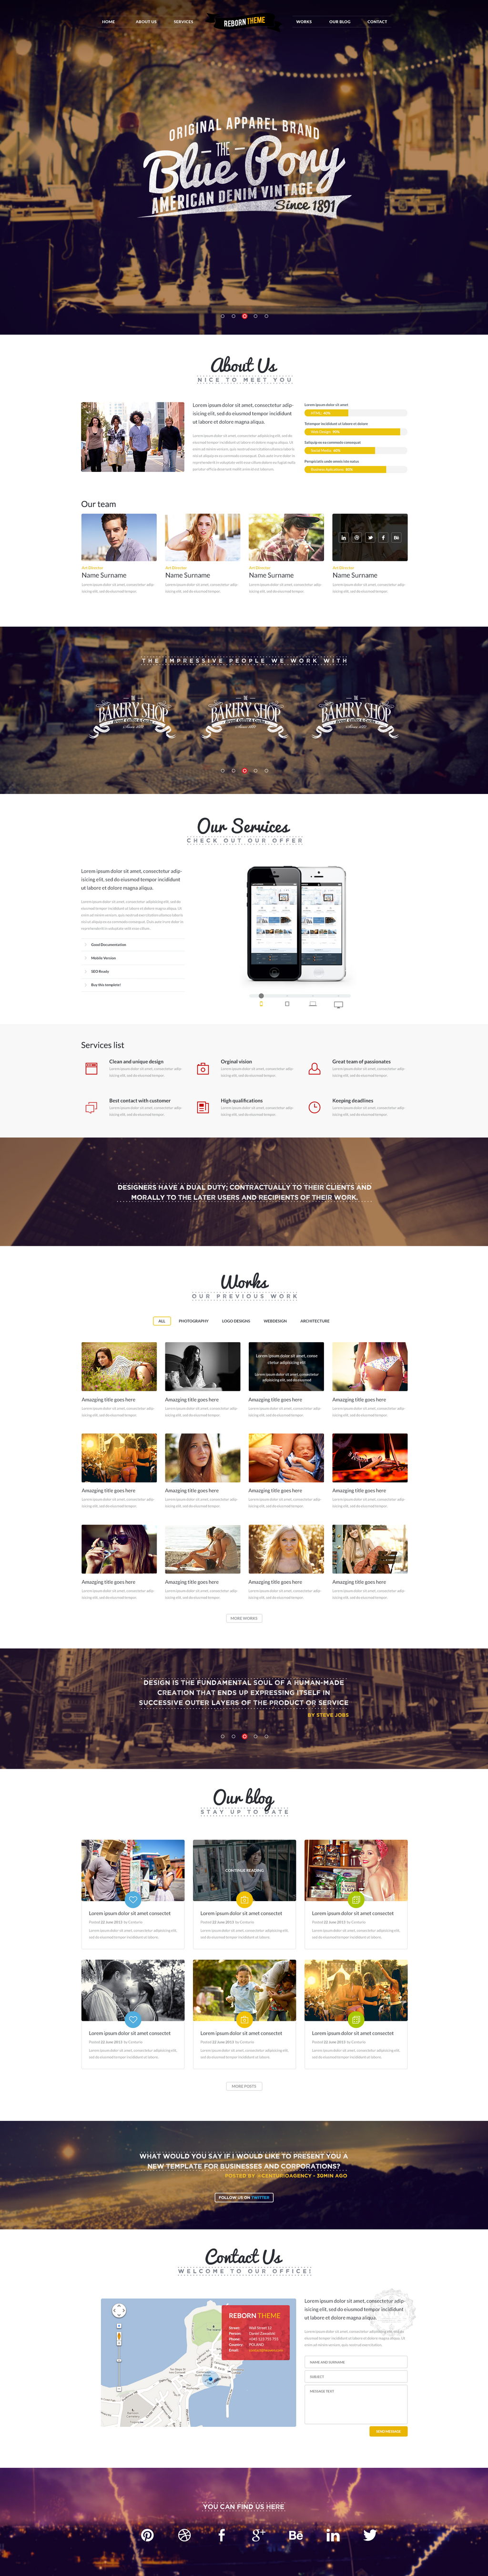 Reborn - Retro PSD Template by DarkStaLkeRR